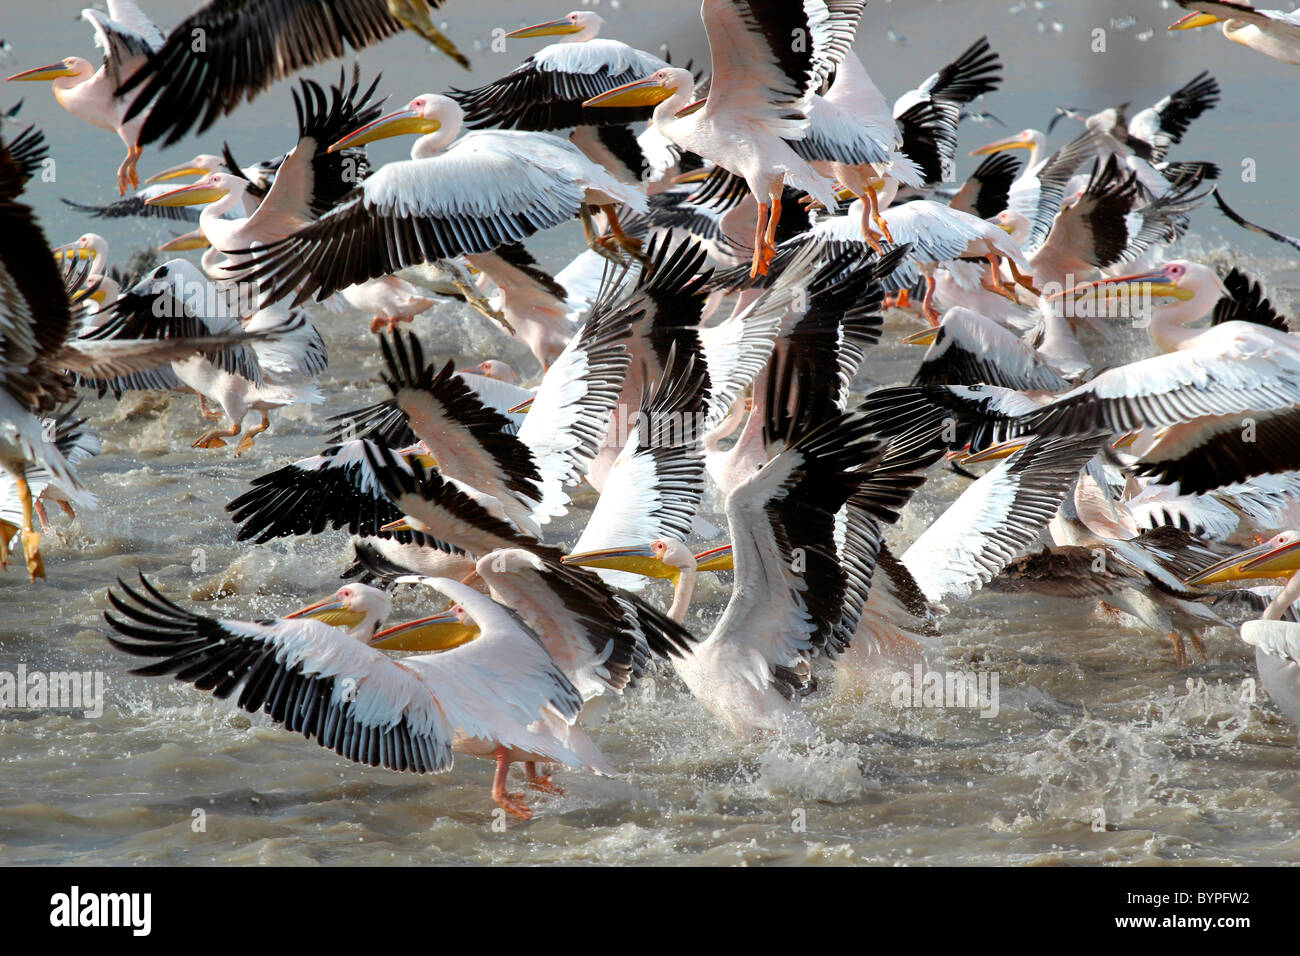 A groupf of great white pelican ( pelecanus onocrotalus) birds in Rann of Kutch, Gujarat, india - Stock Image